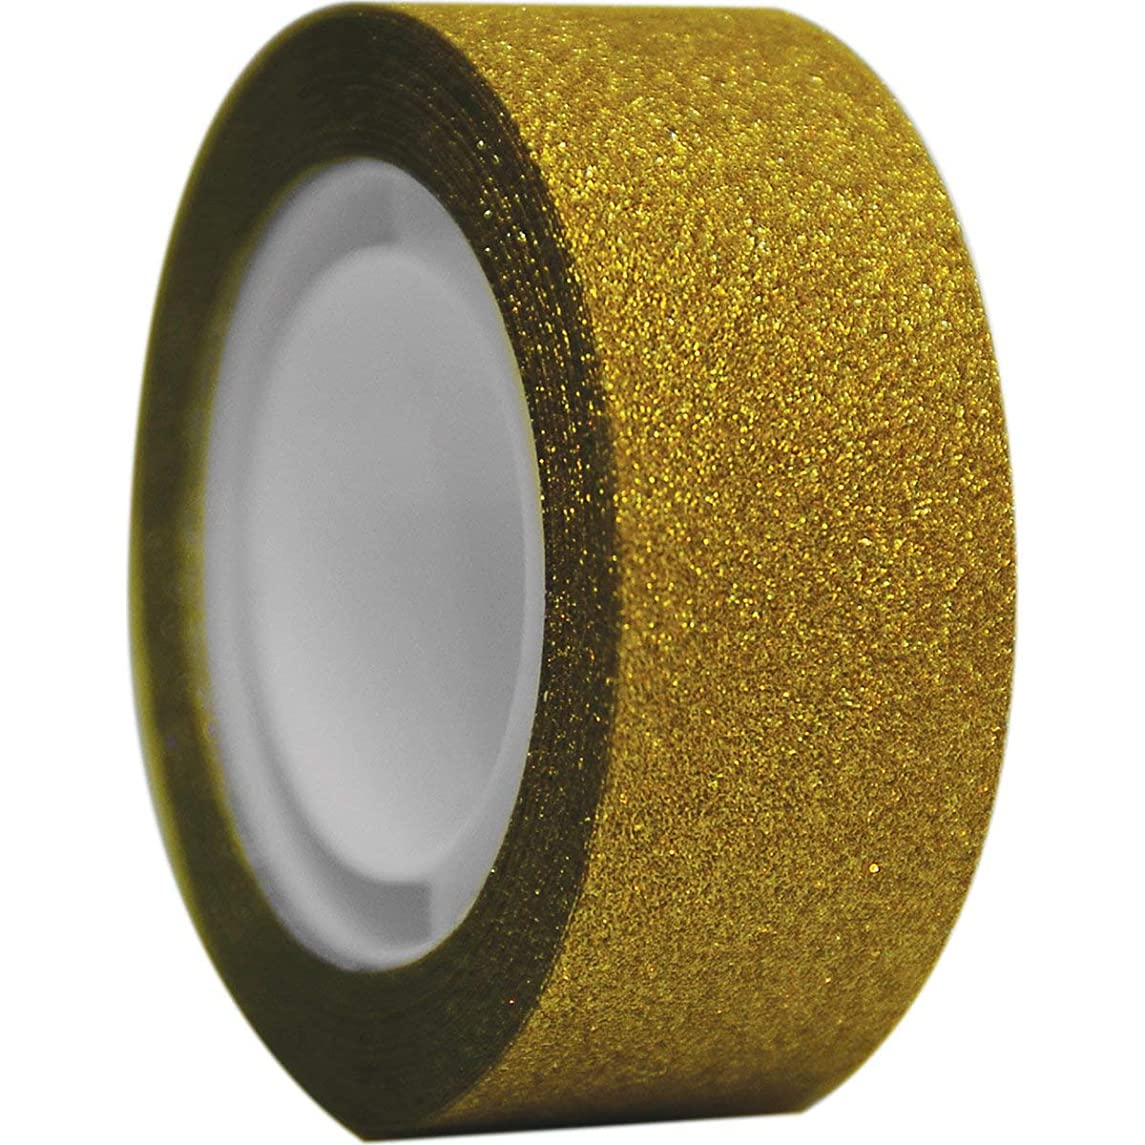 Lepage'S, Inc. 75x300-38043 Le Page'S Seal-It Glitter Tape .75